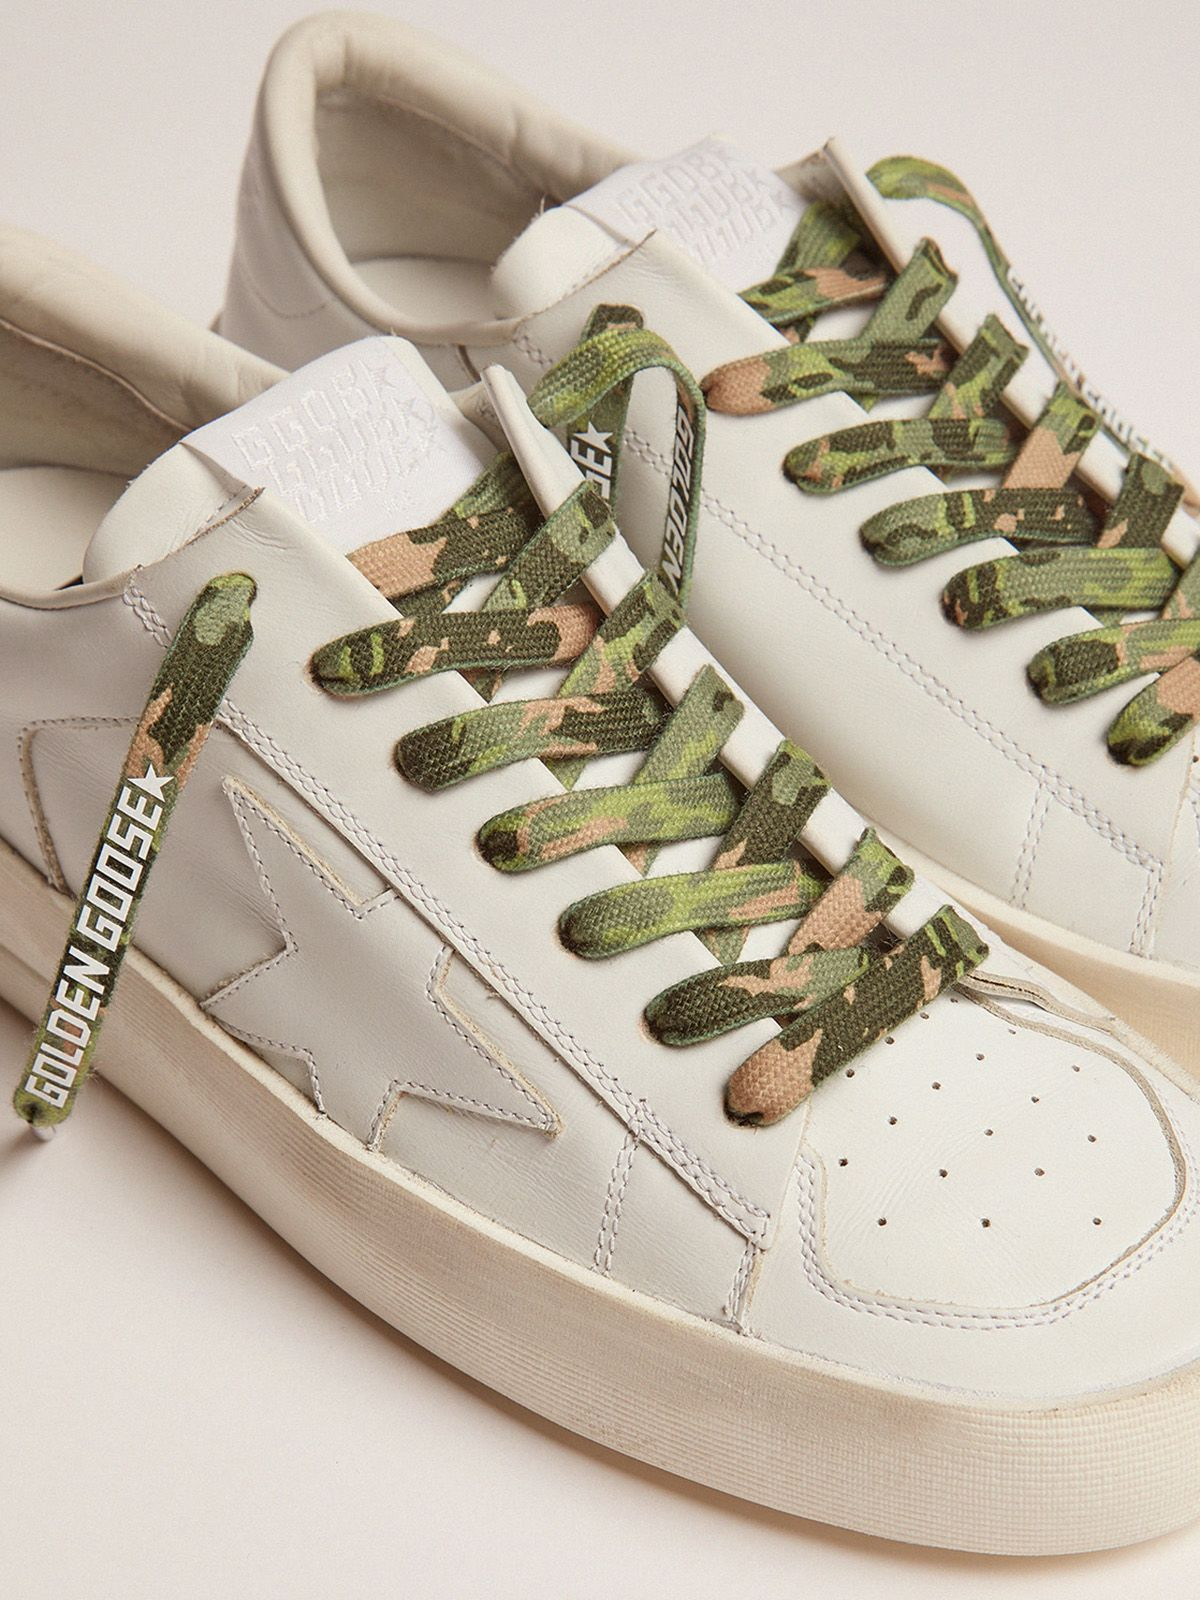 Golden Goose - Men's green camouflage laces with white logo in